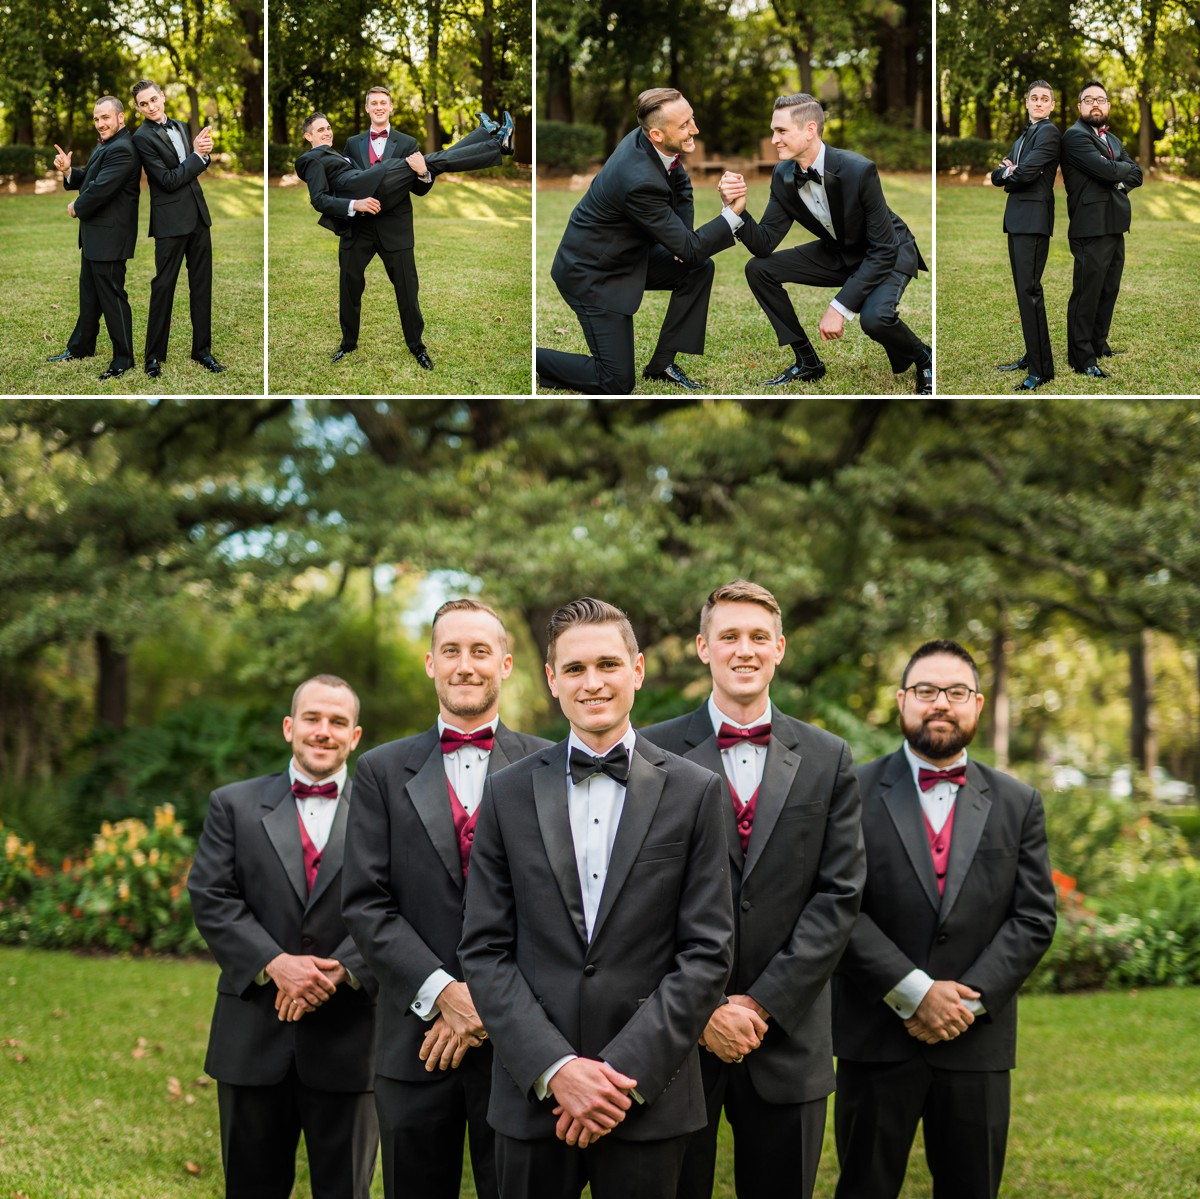 Manor House Wedding at The Houstonian Hotel Groom with Groomsmen